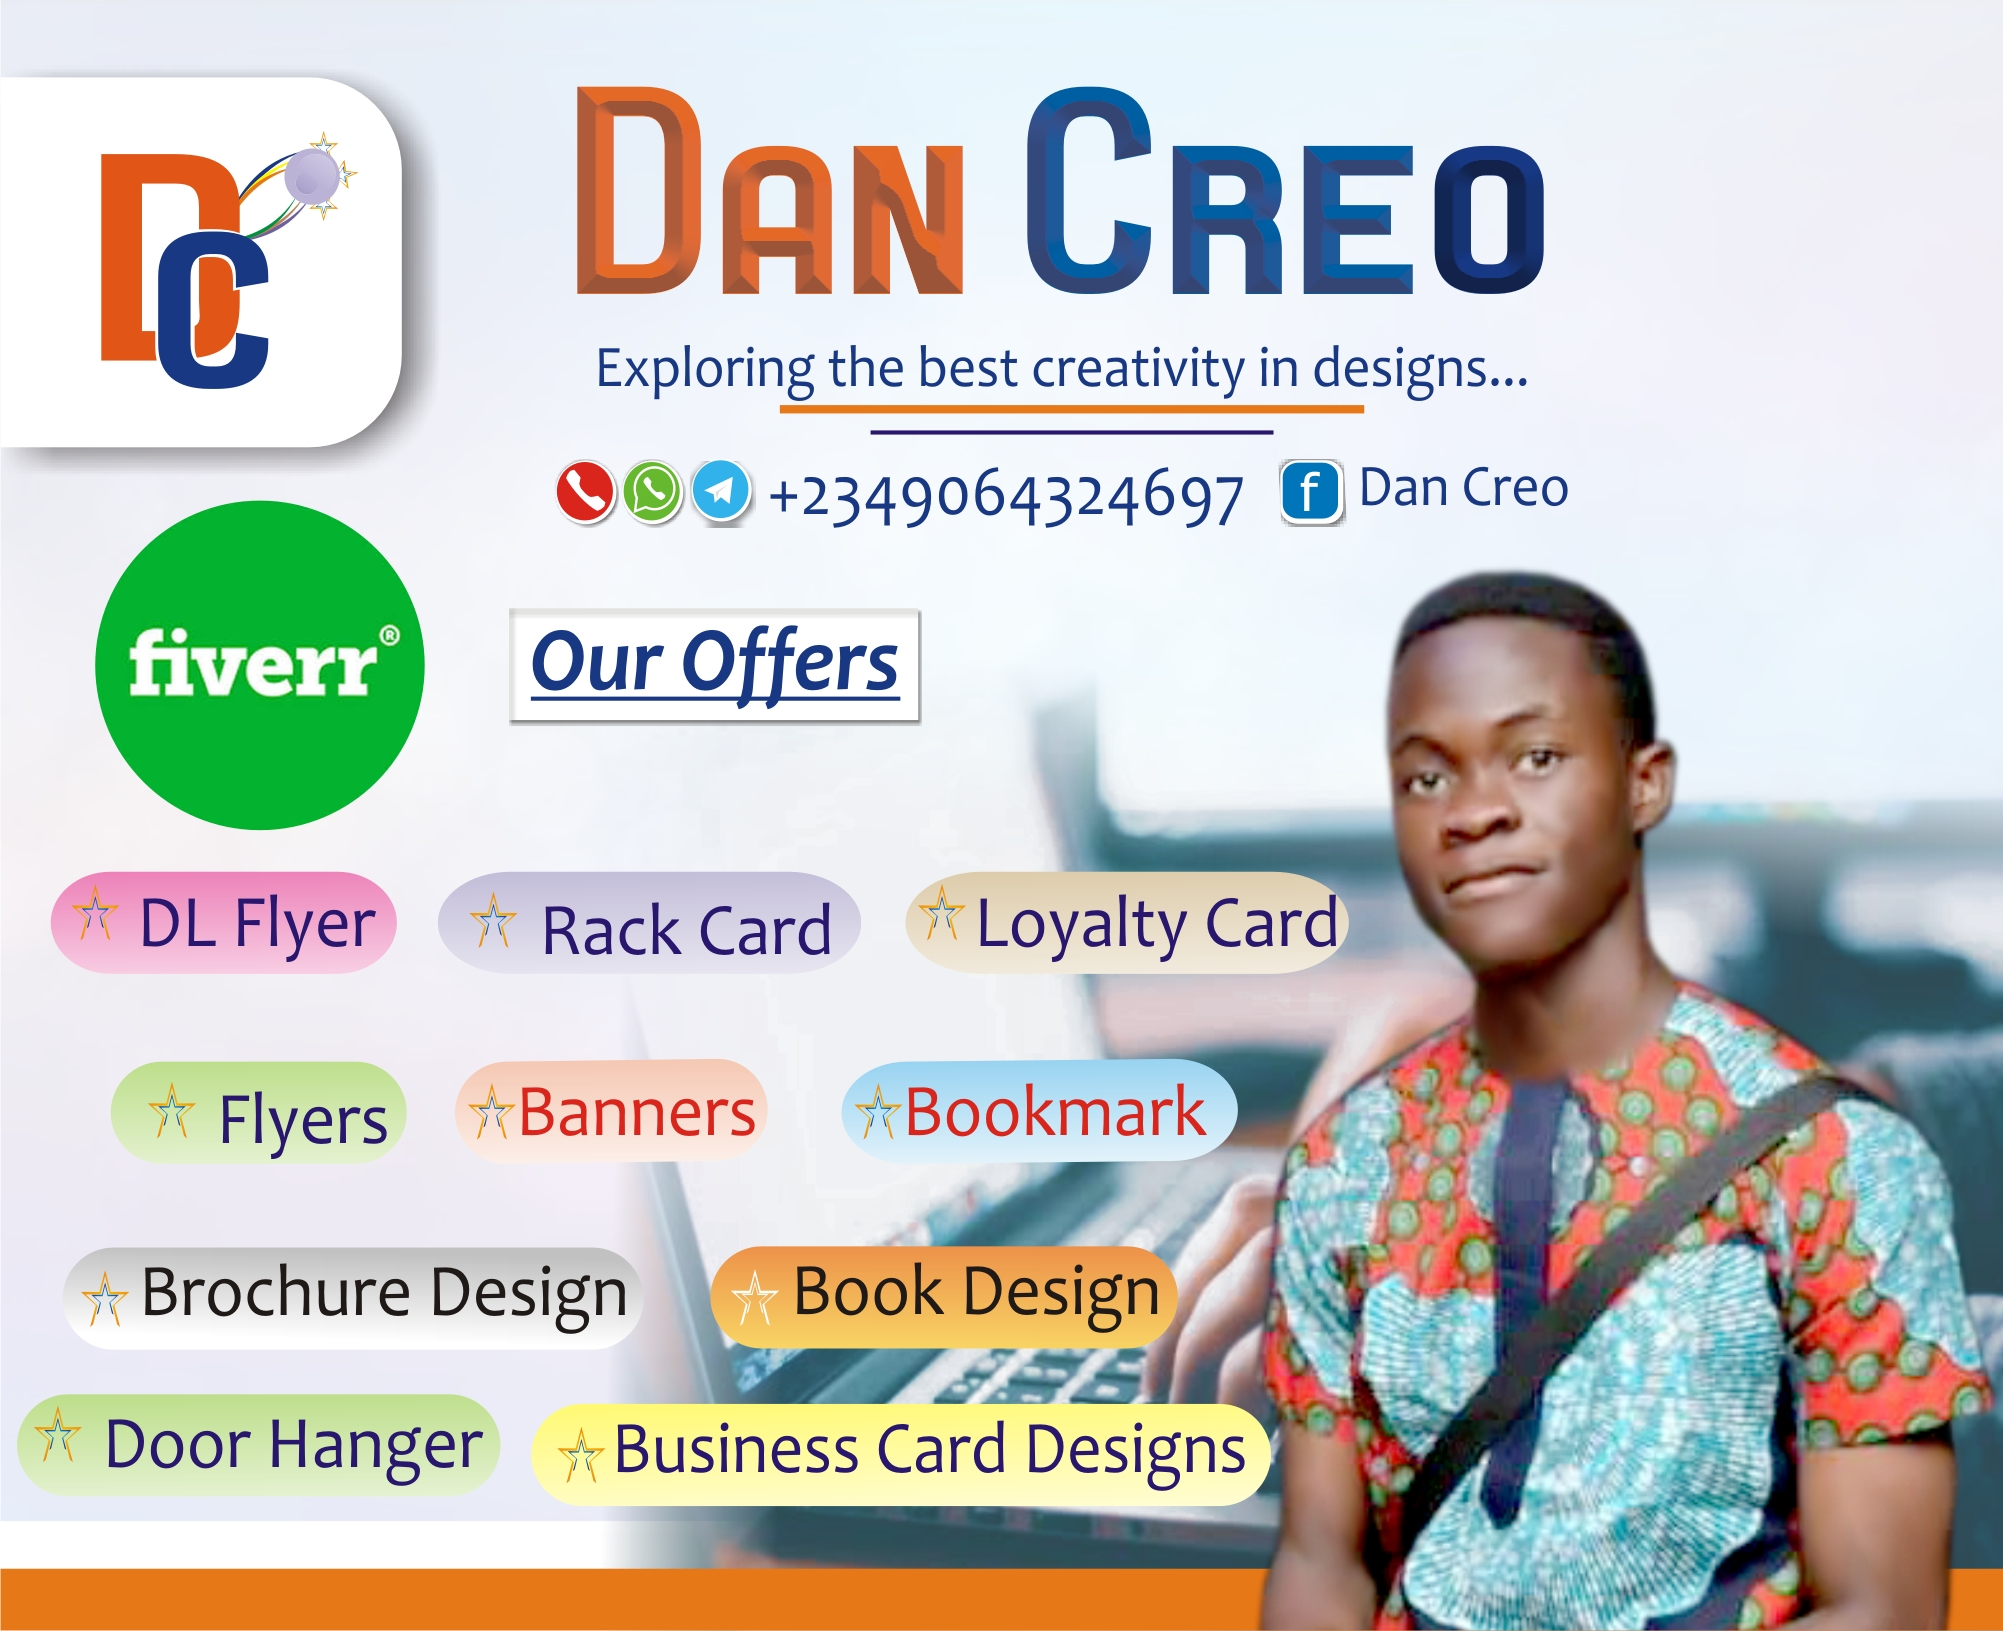 I will design a modern, unique, creative and professional DL Flyer, Flyer, Rack card, Post card, and Loyalty Card in less than 12hours, FiverrBox